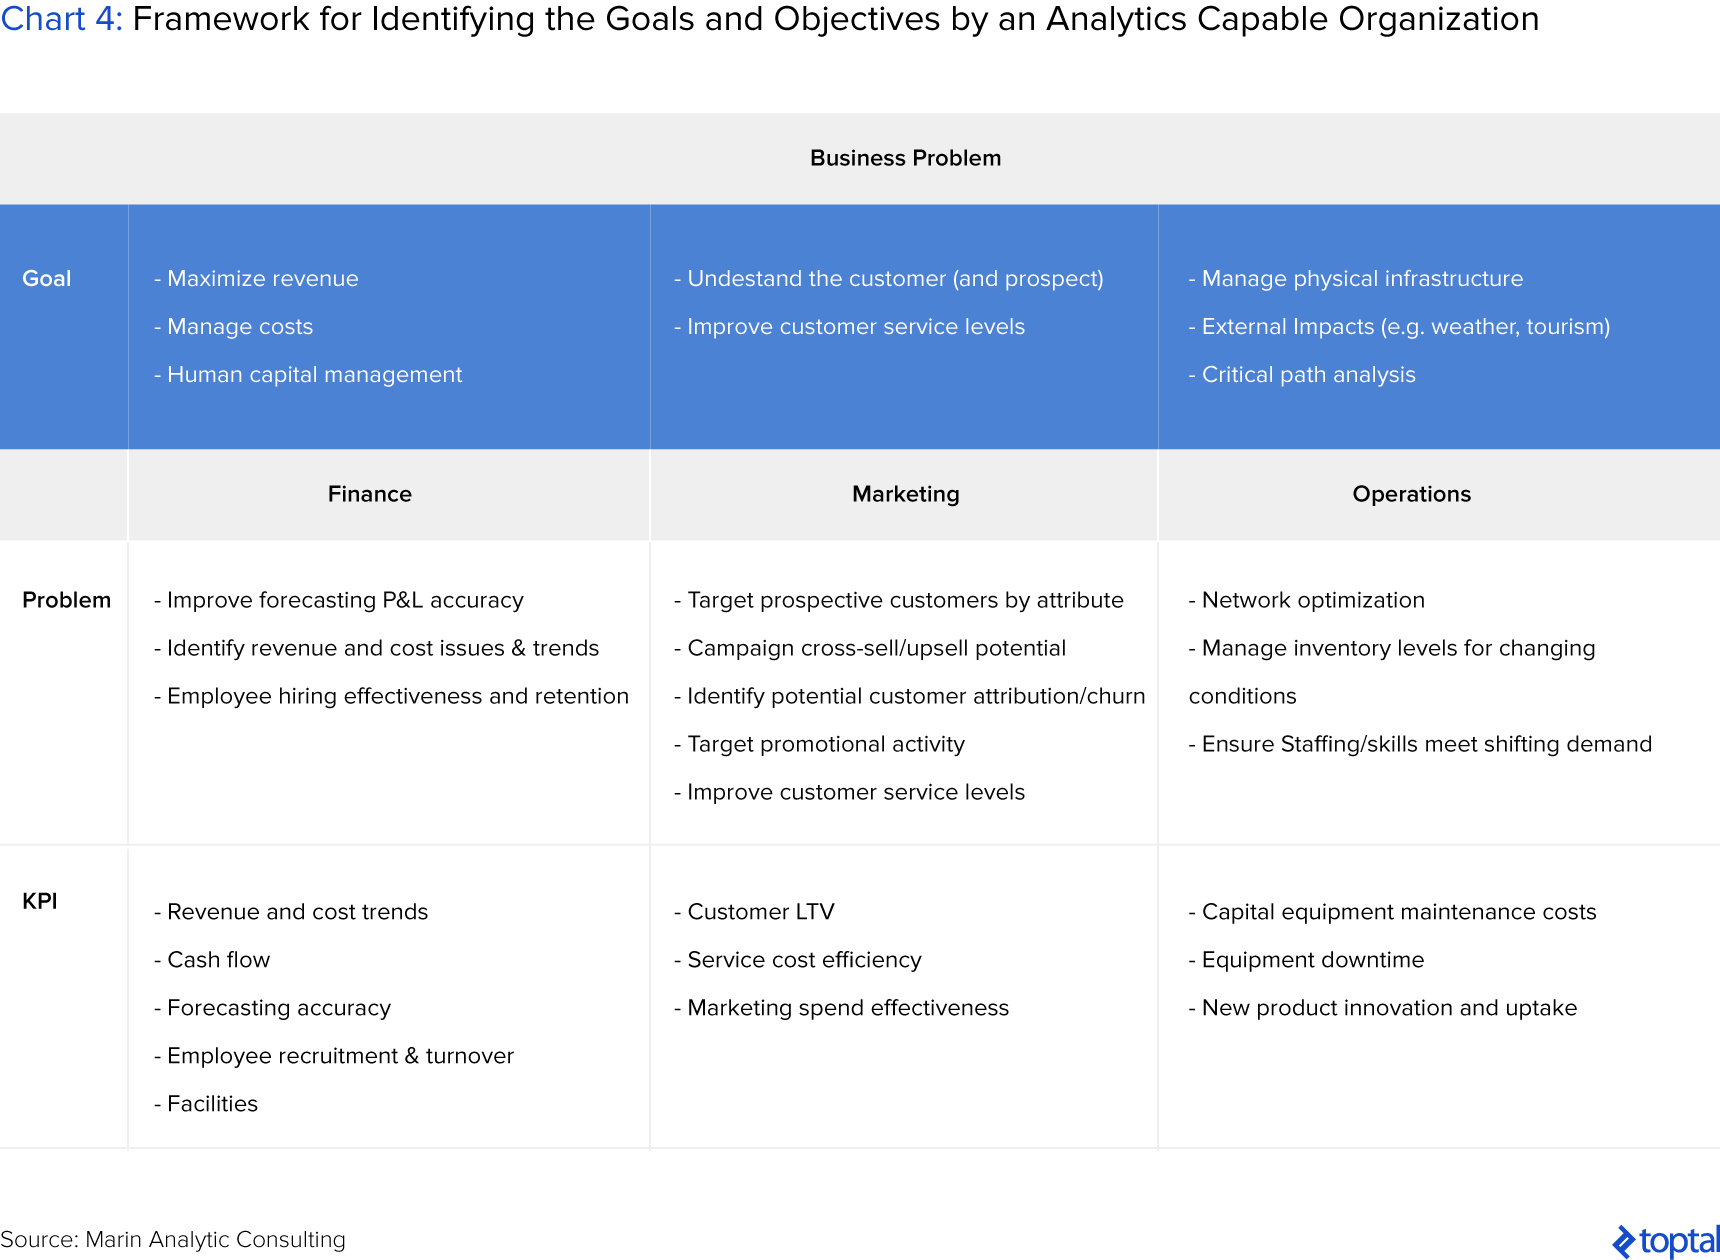 Chart 4: Framework for Identifying the Goals and Objectives by an Analytics Capable Organization